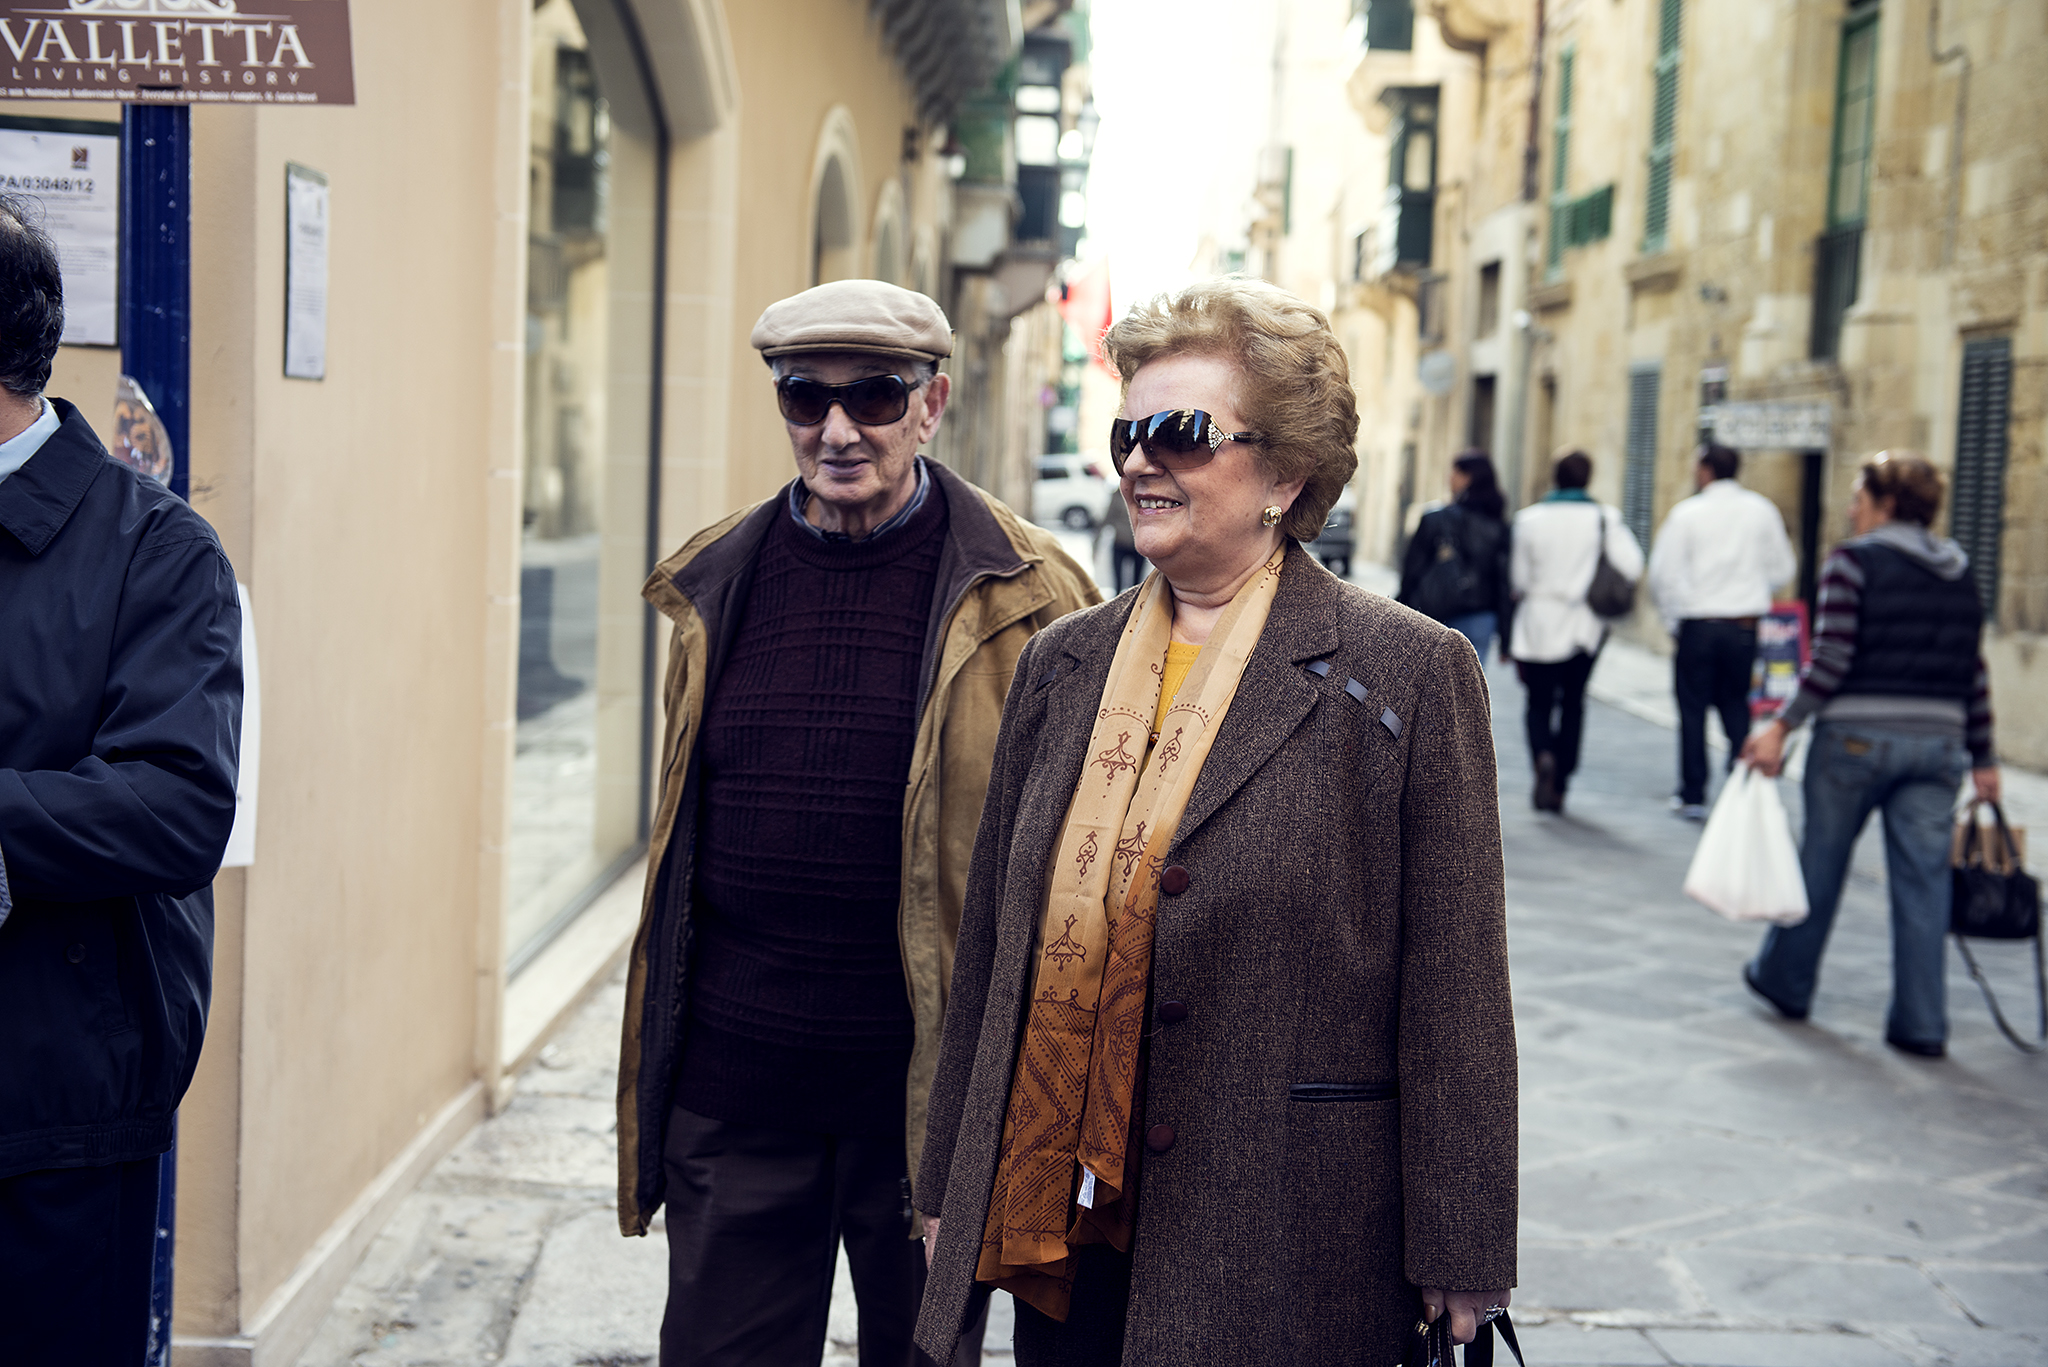 Elegant old man and woman walking down the street